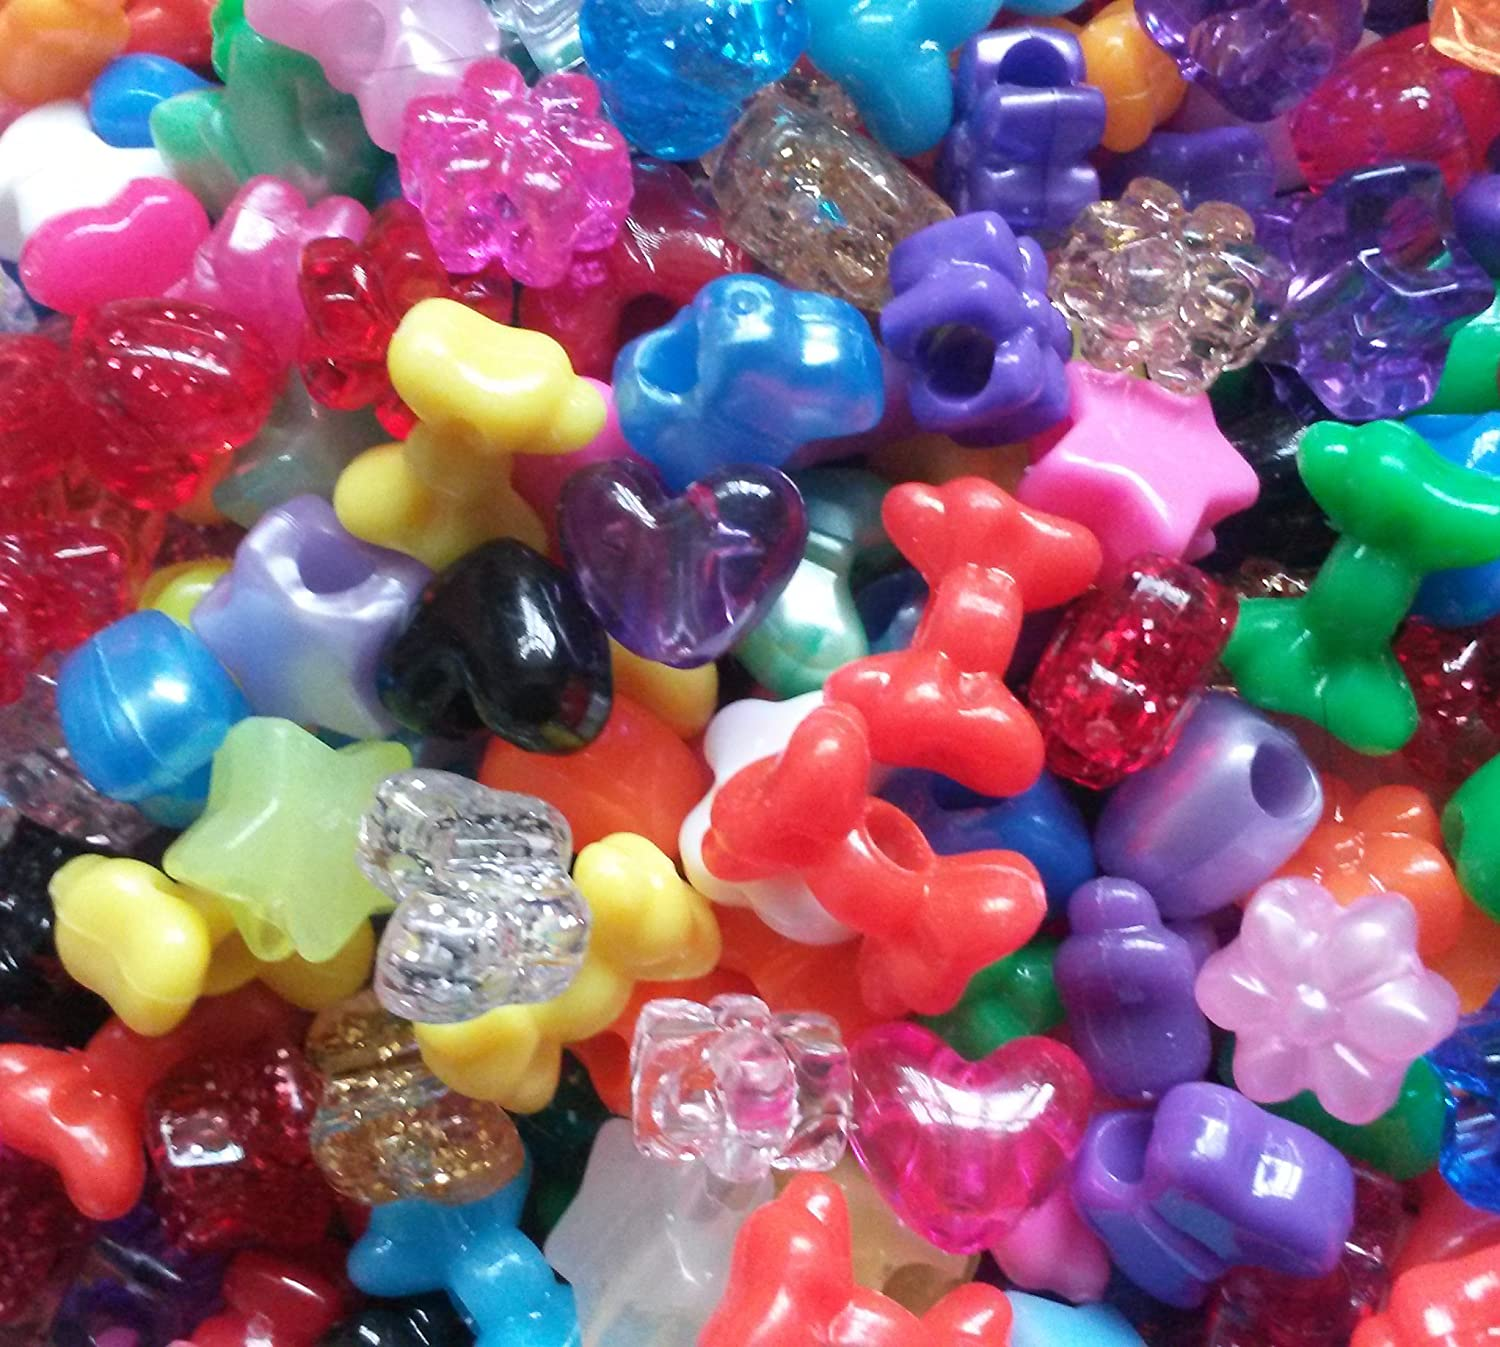 100 Mixed Shapes Stars Hearts Bows Flowers Butterflies Pony Beads by KCG Trading The Beadery